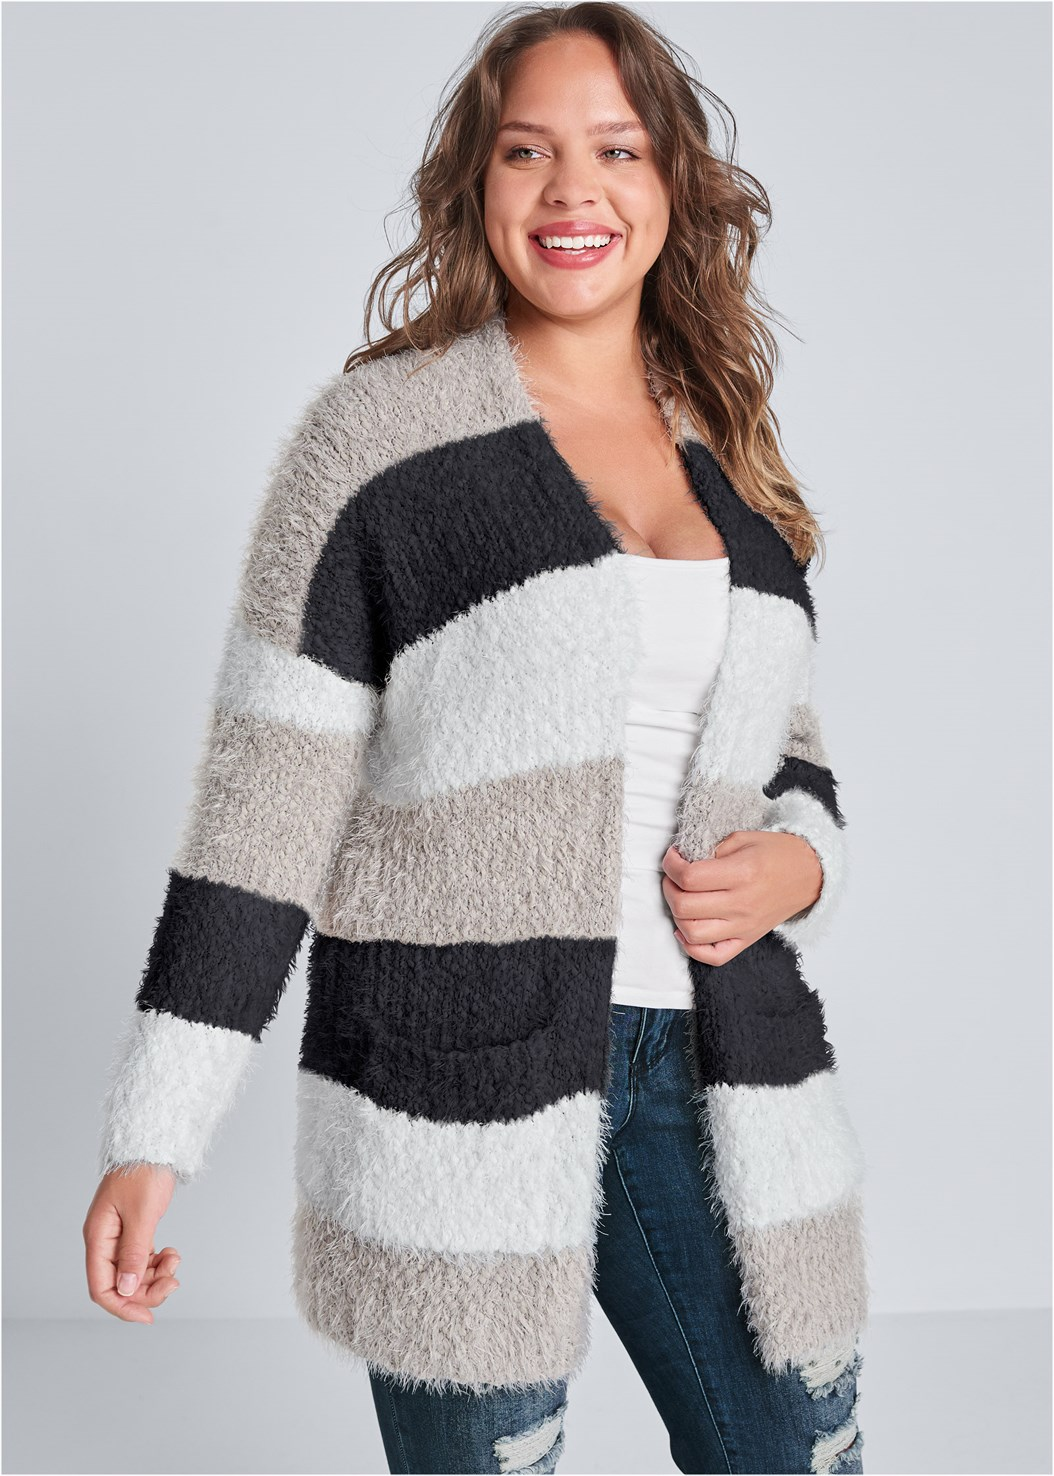 Cozy Striped Cardigan,Basic Cami Two Pack,Long And Lean V-Neck Tee,Ripped Skinny Jeans,Mid Rise Color Skinny Jeans,Essential Espadrille Wedges,Square Hoop Earrings